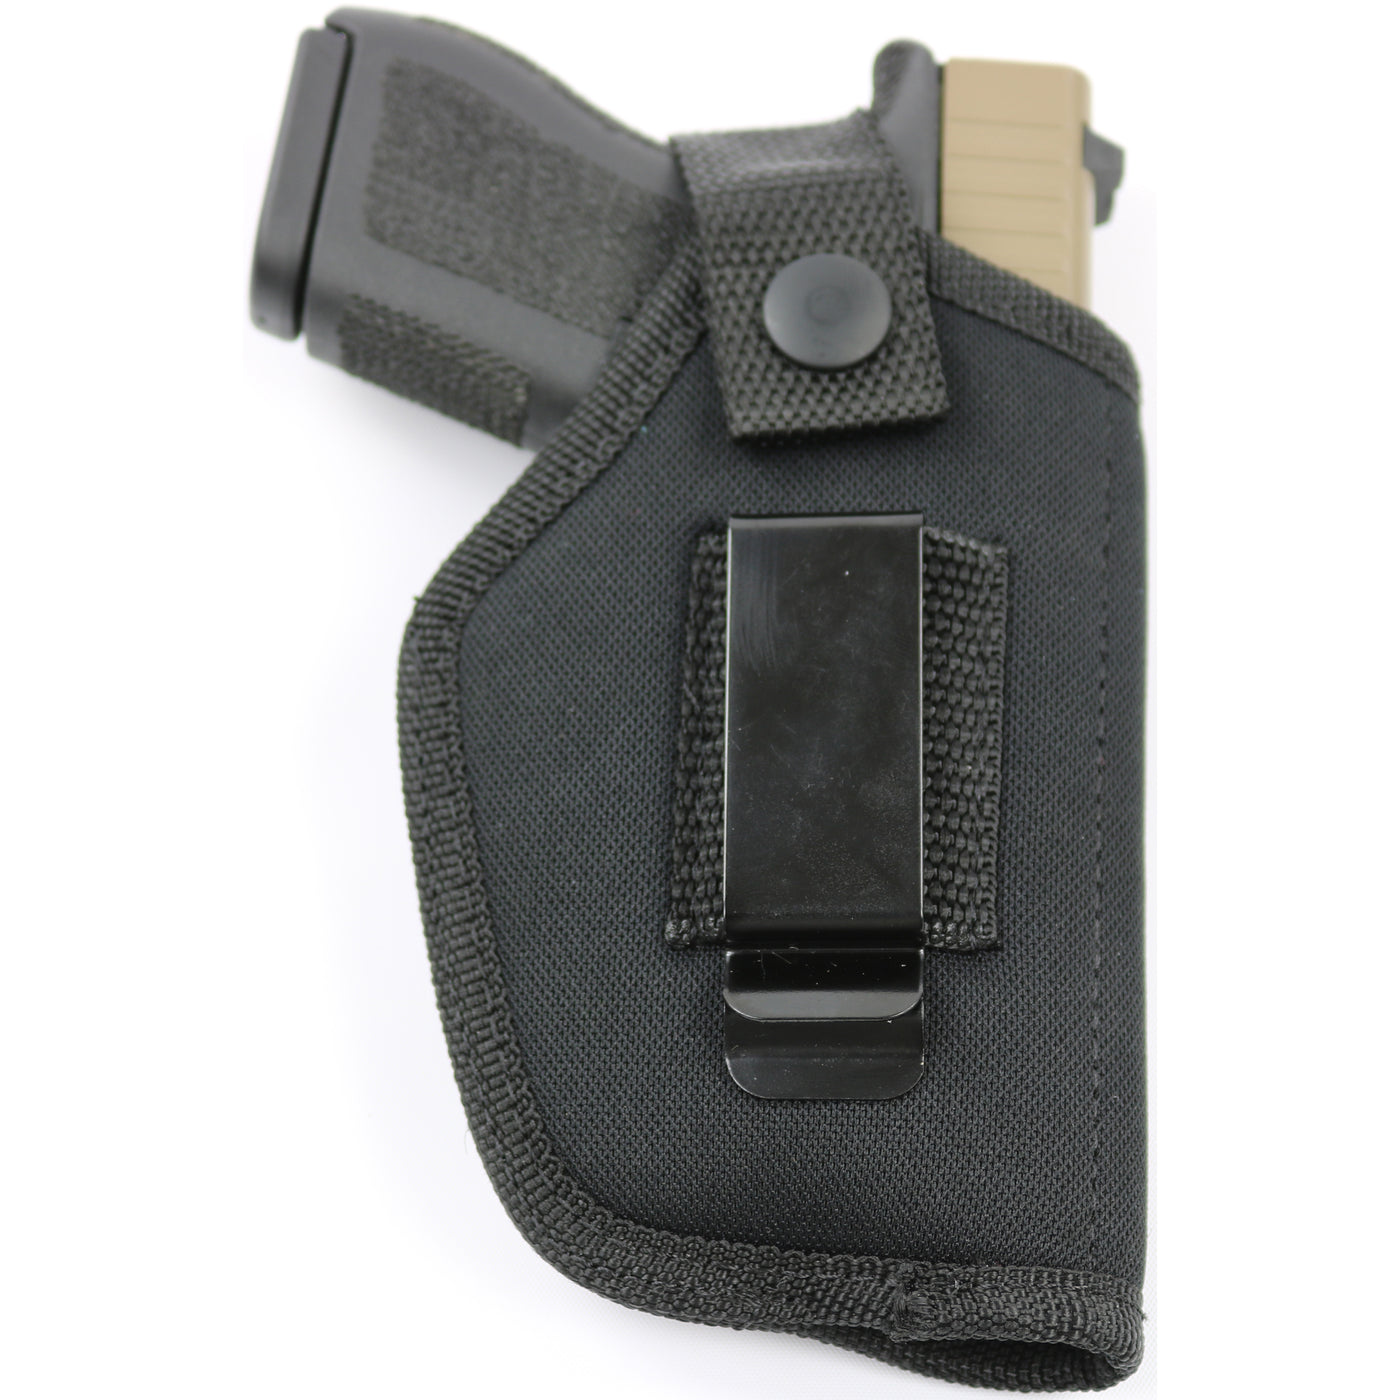 The Ultimate Concealed Carry Holster Size 2